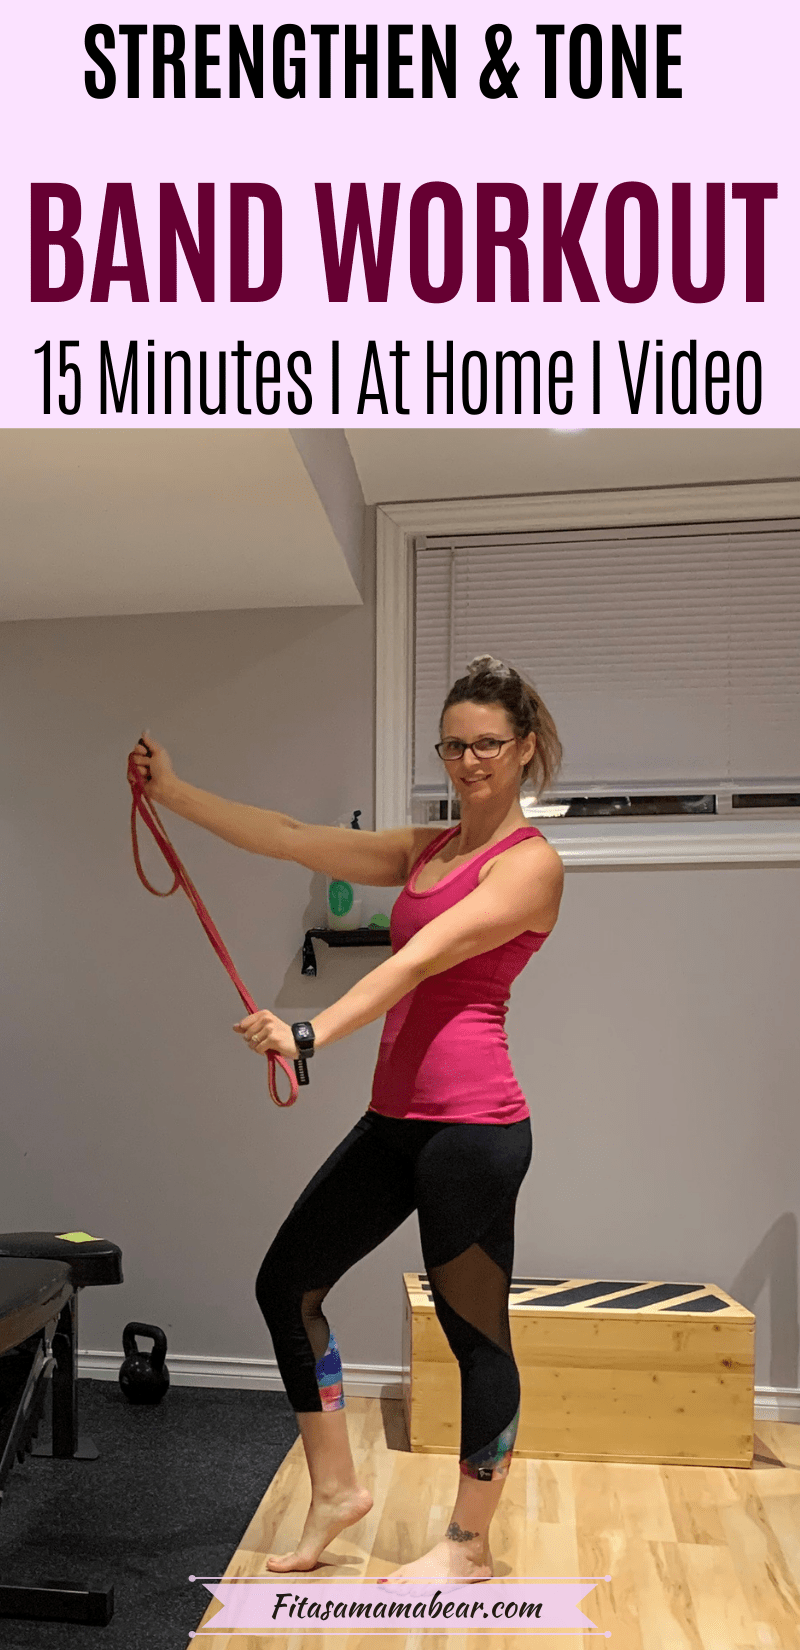 Pinterest image with text: woman in pink shirt and black pants in the gym holding a resistance band with text about a 15 minute band workout